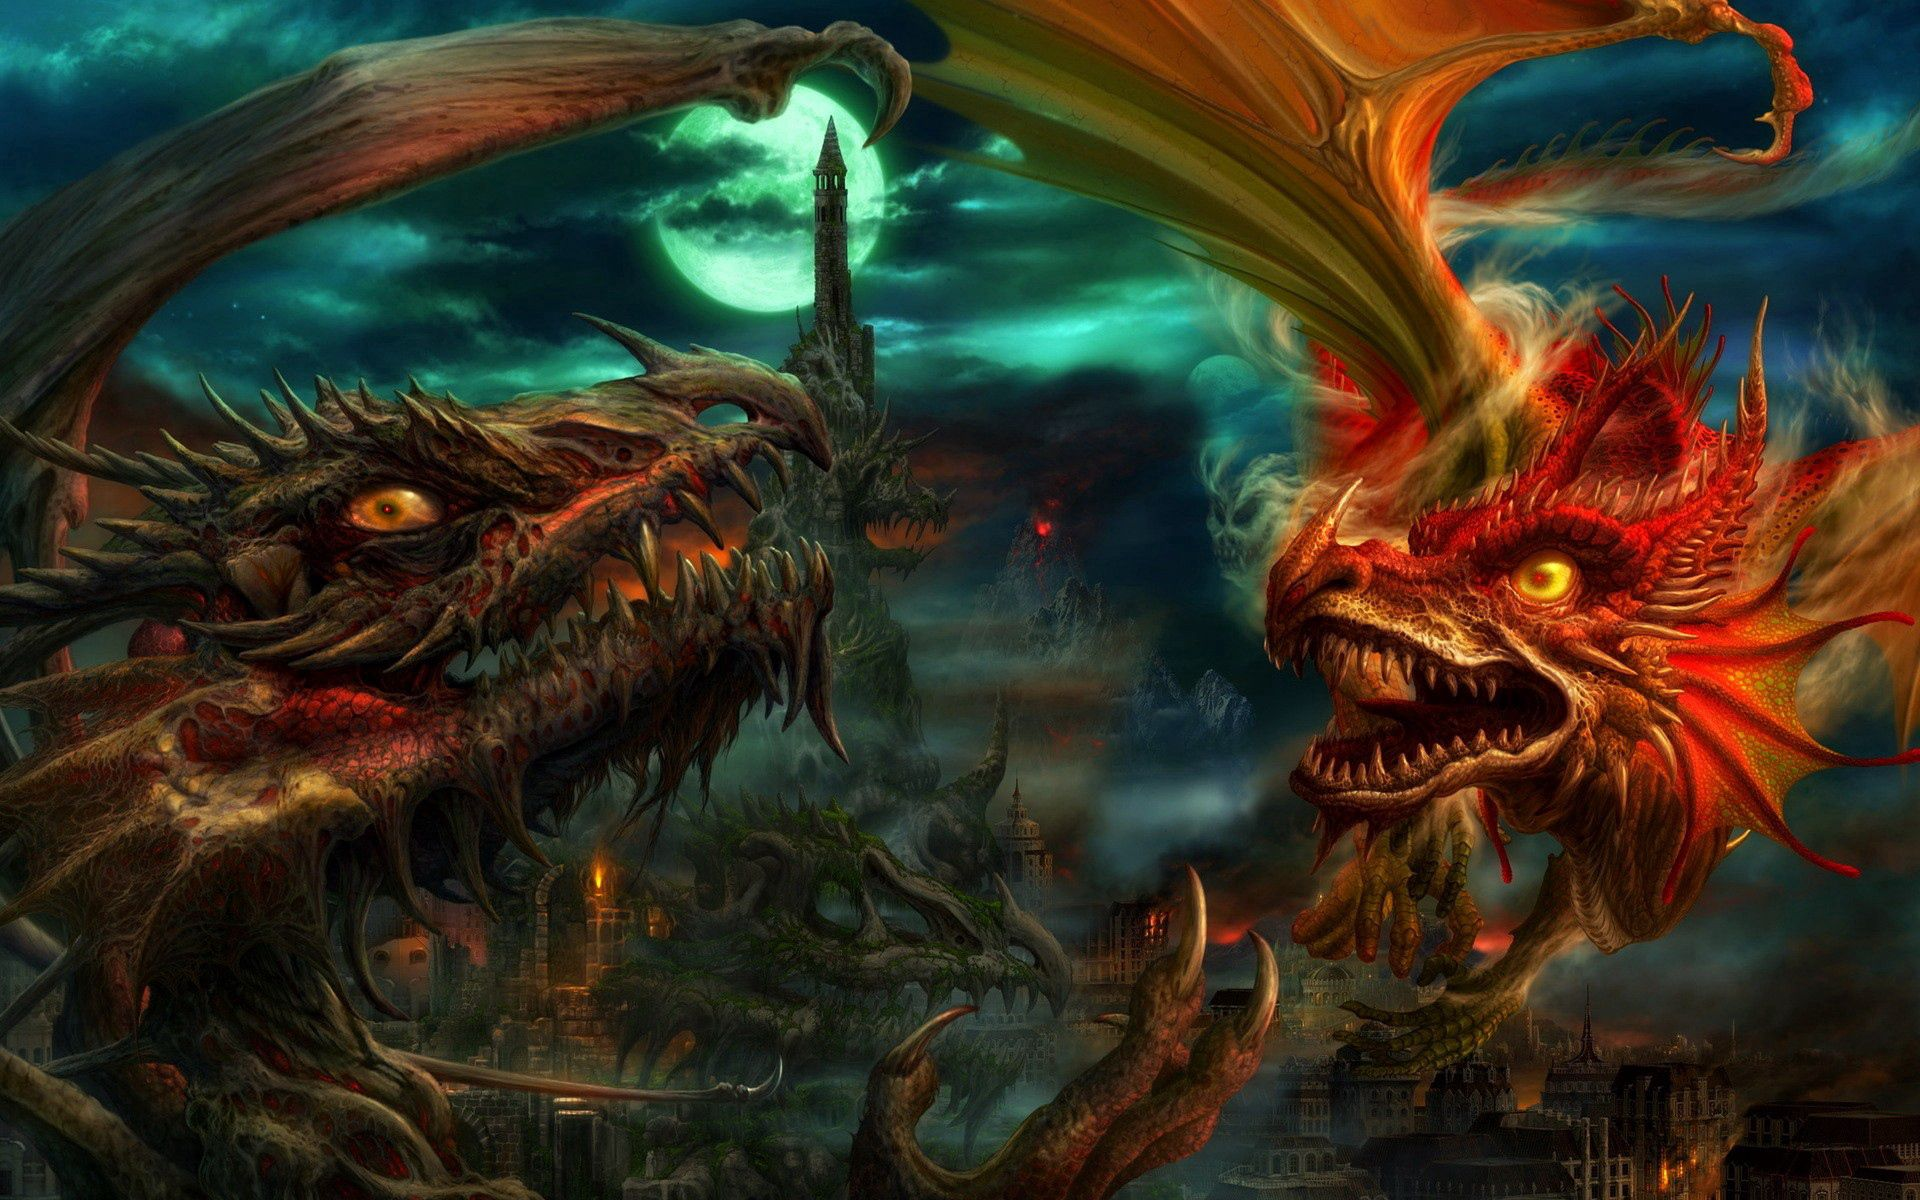 Popular Dragons images for mobile phone